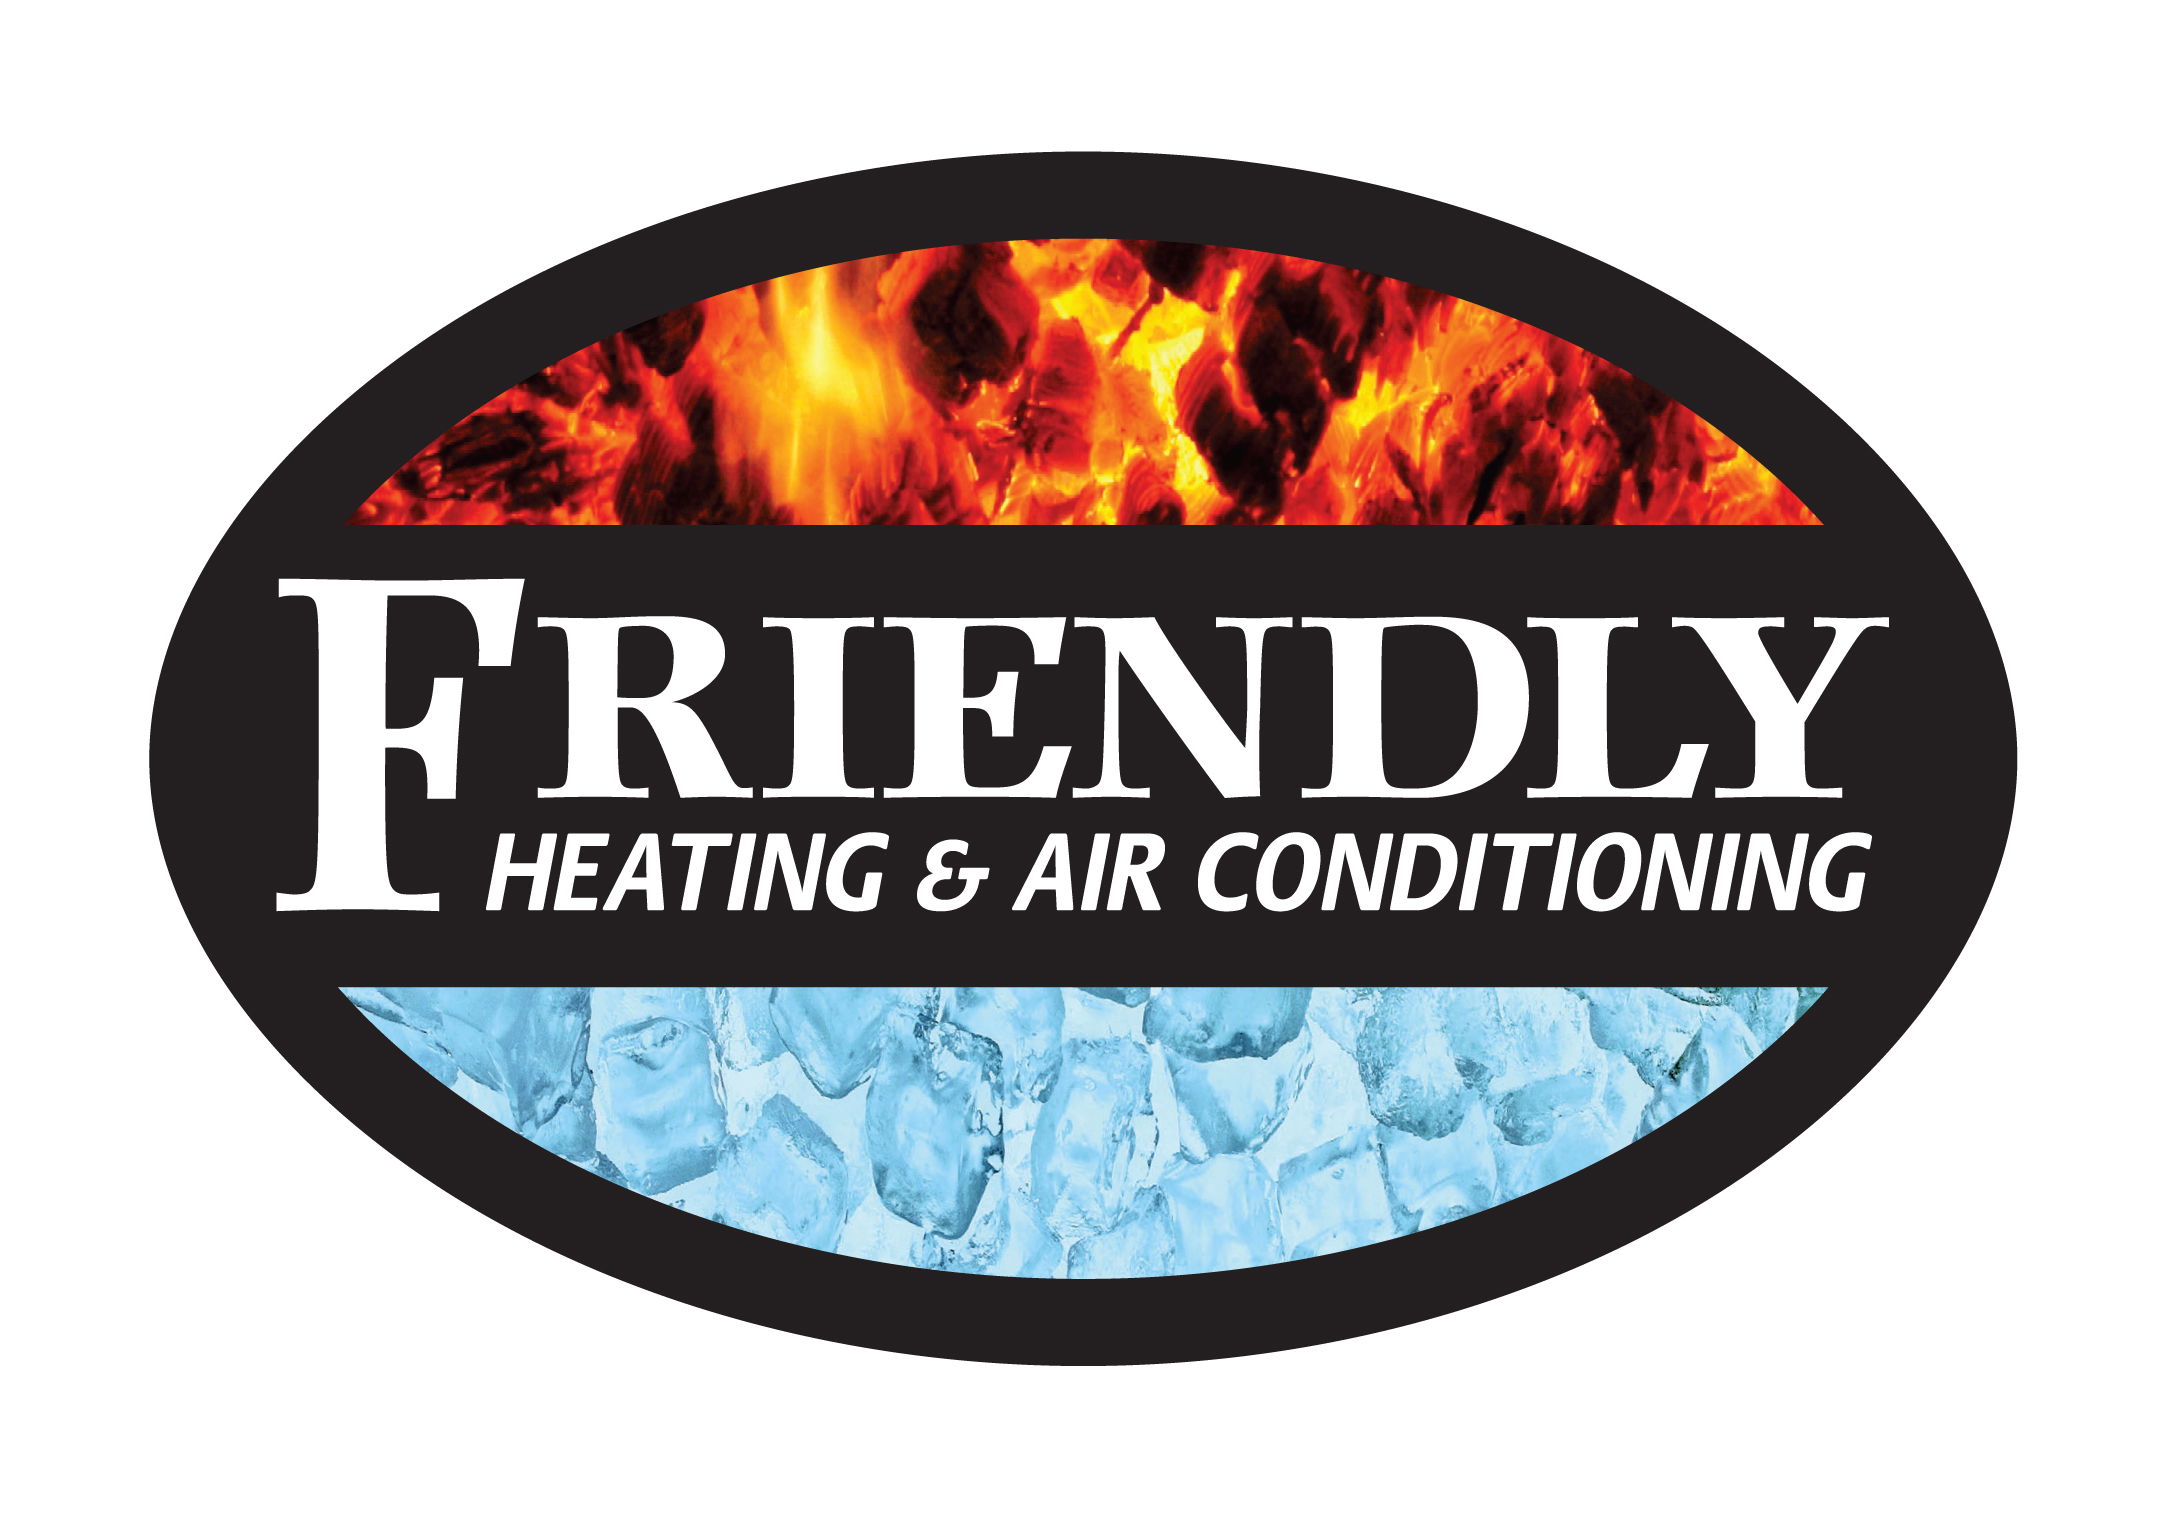 Heat Air Friendly Heating Air Conditioning Inc